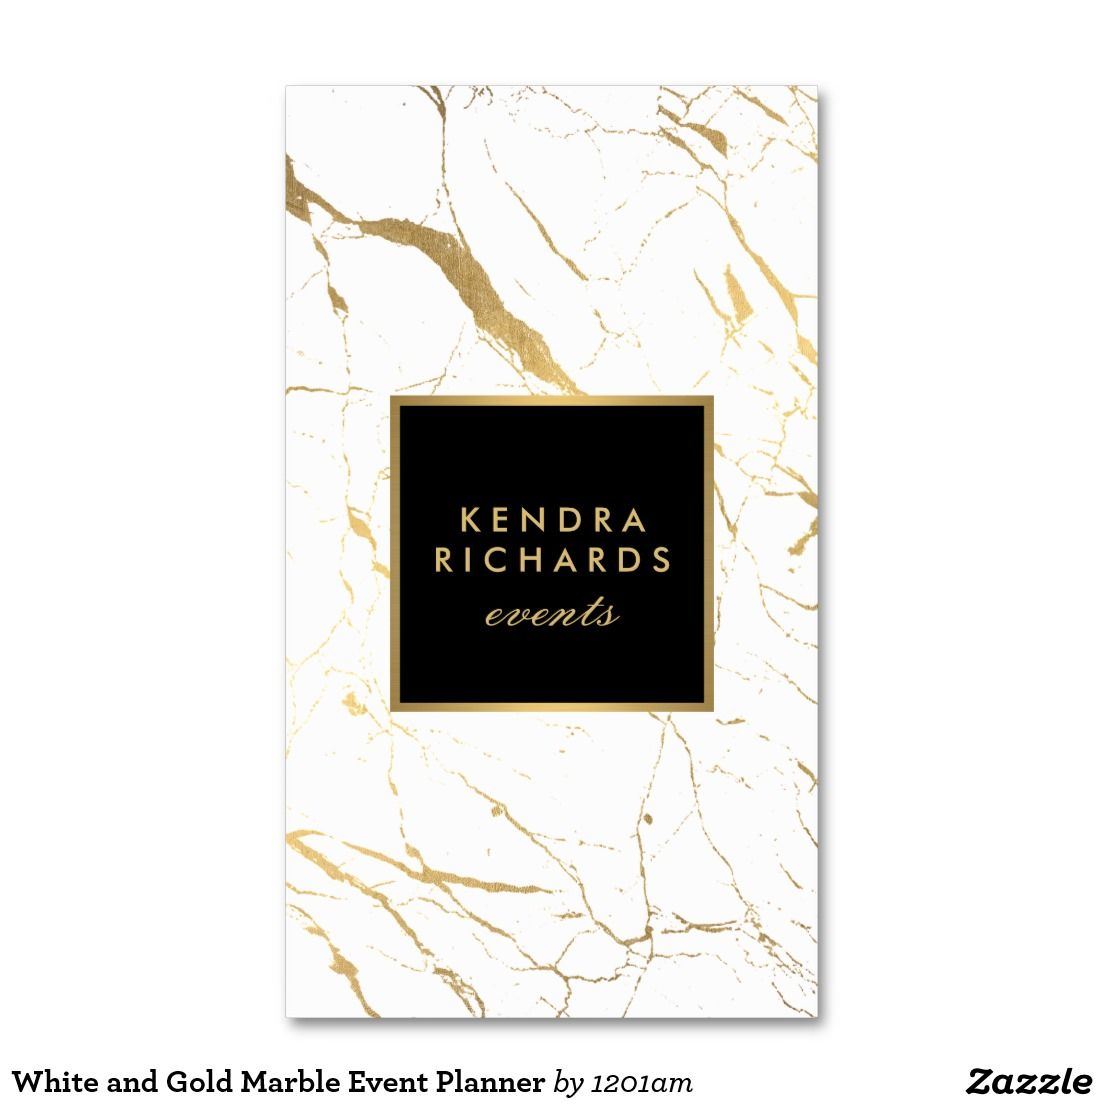 Wedding Planner Names Ideas: White And Gold Marble Event Planner Business Card